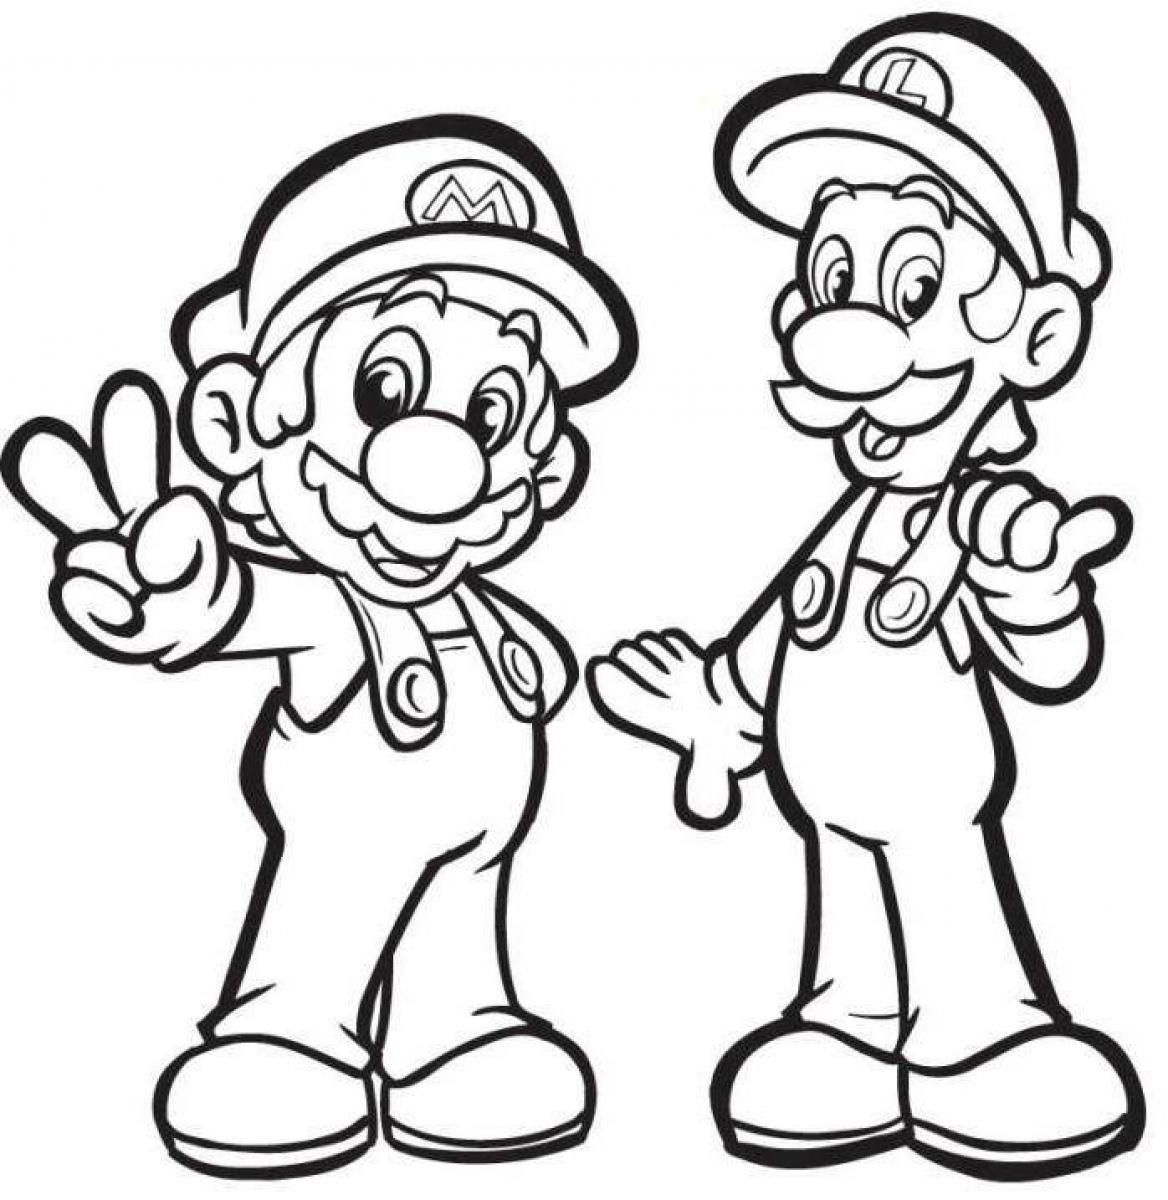 mario mansion coloring pages - photo#15